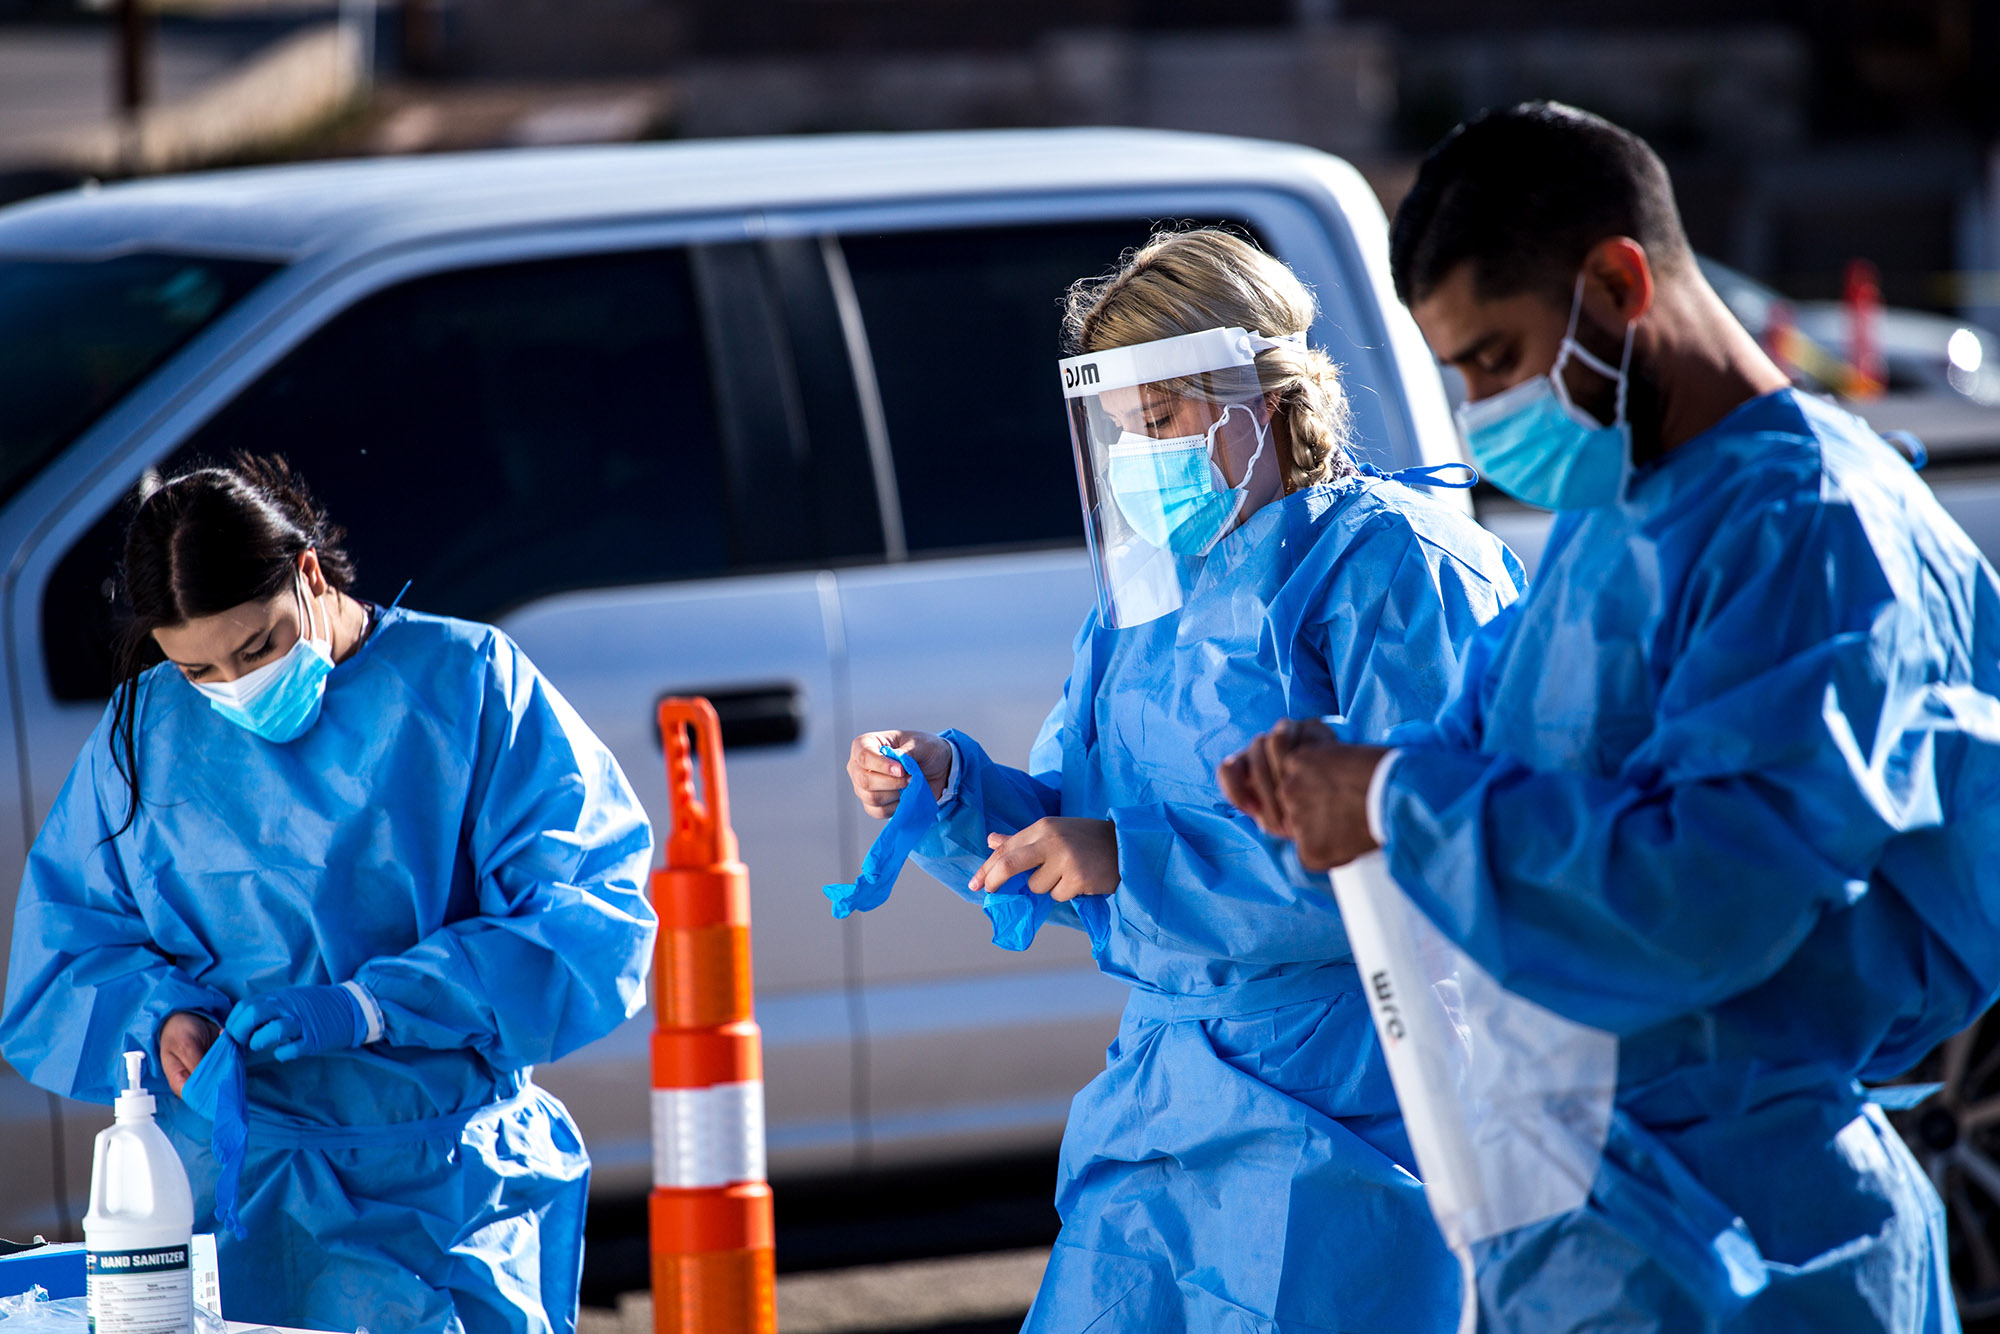 Medical workers put on personal protective equipment (PPE) before starting shifts at a Covid-19 drive-thru testing site in El Paso, Texas, on Monday, November 9.